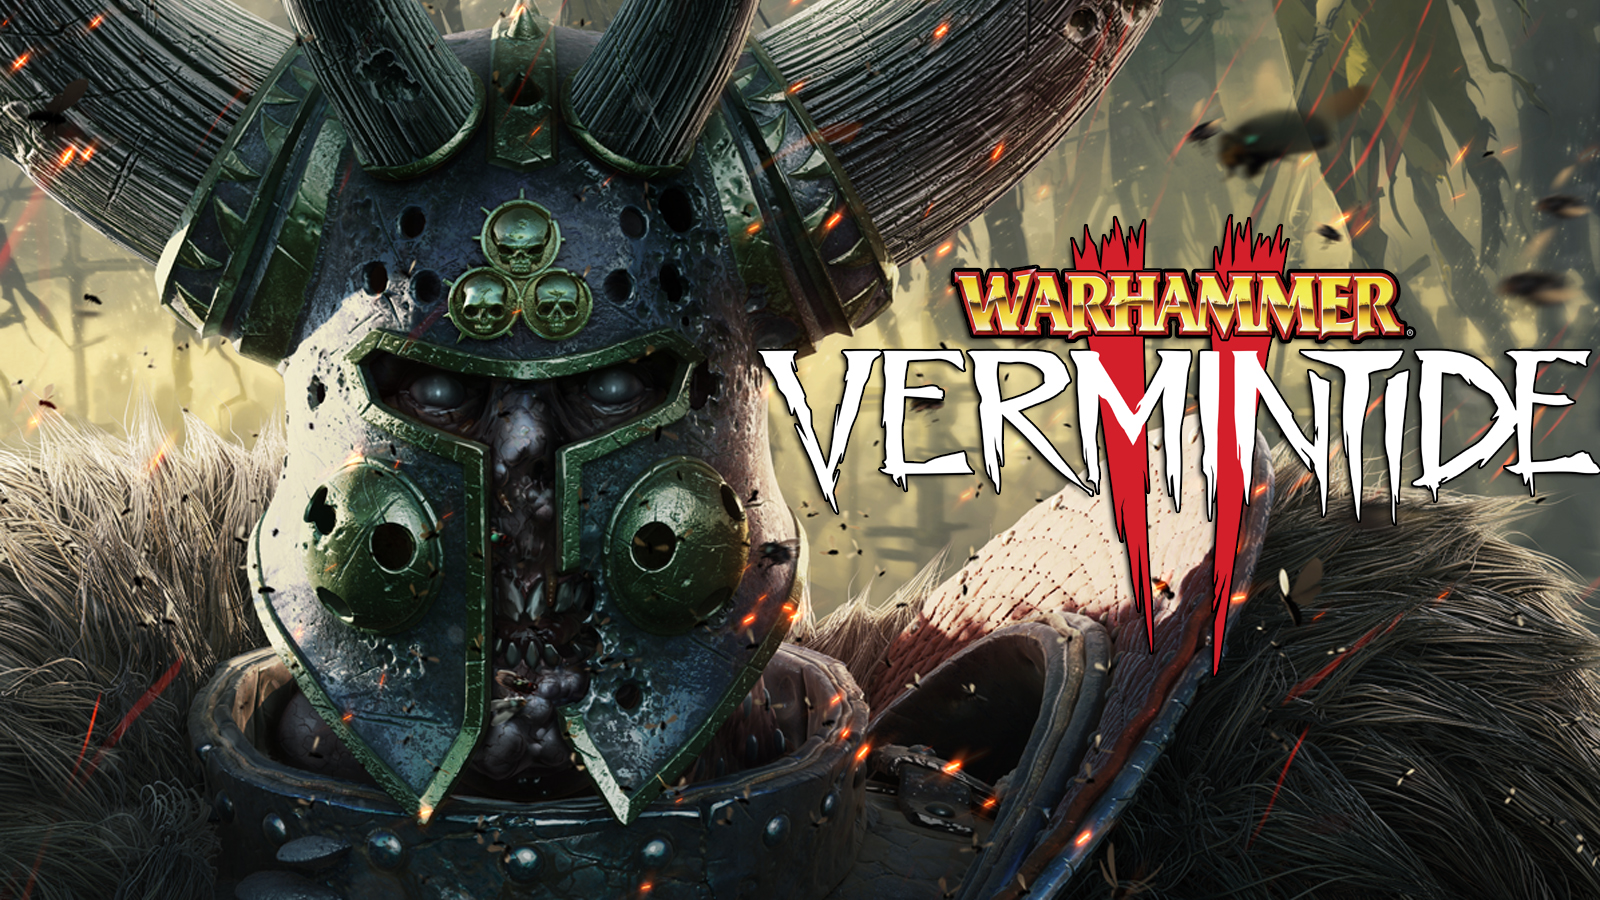 Fatshark_Vermintide_2_Chaos_Warlord_Key_Artwork_copy